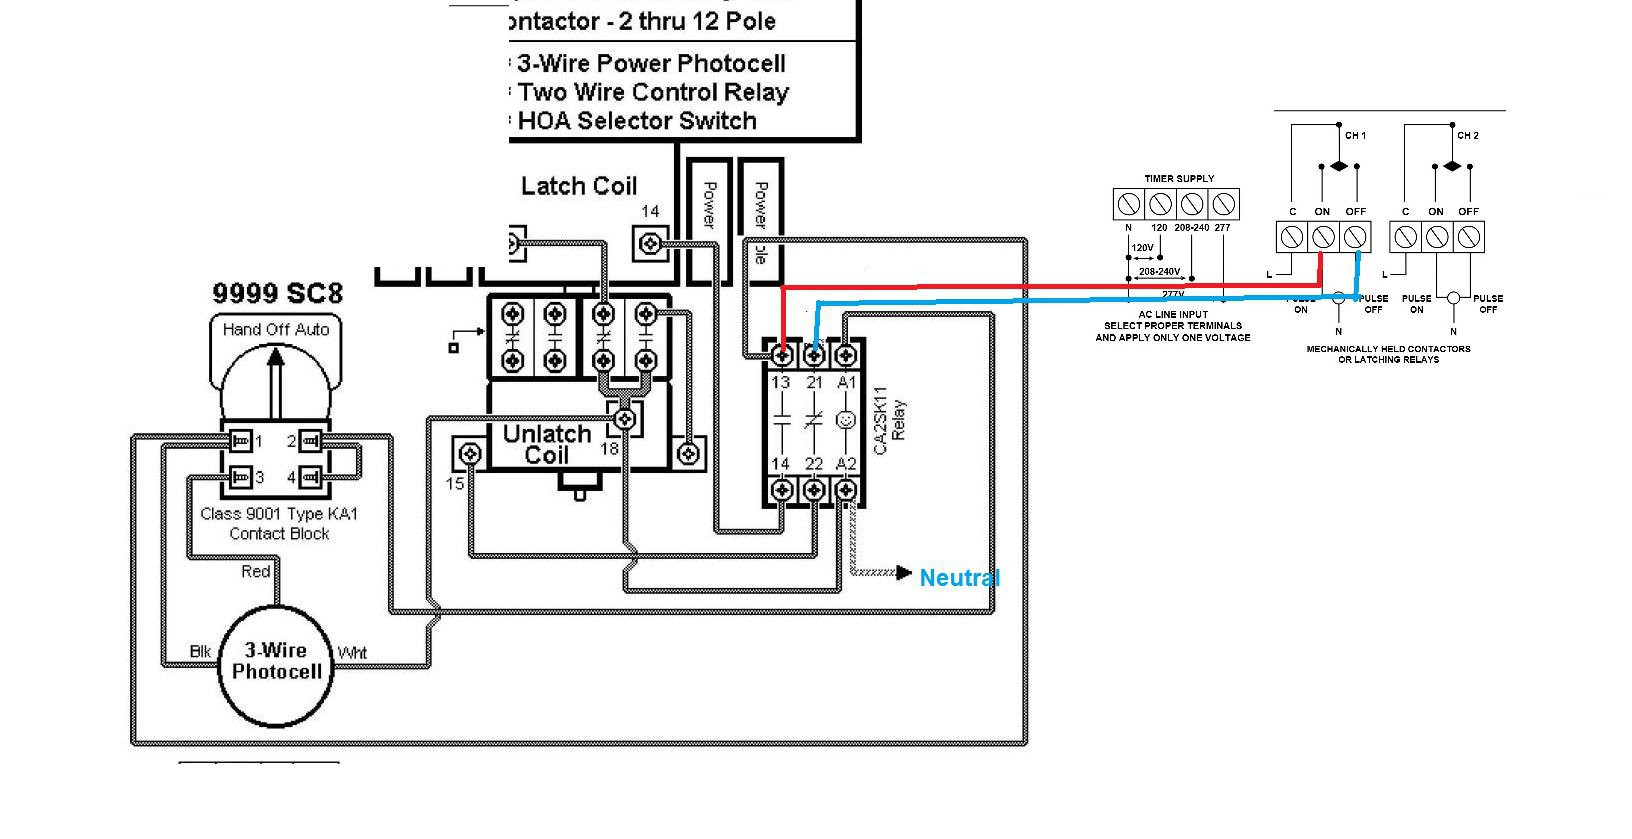 wiring diagram contactor relay